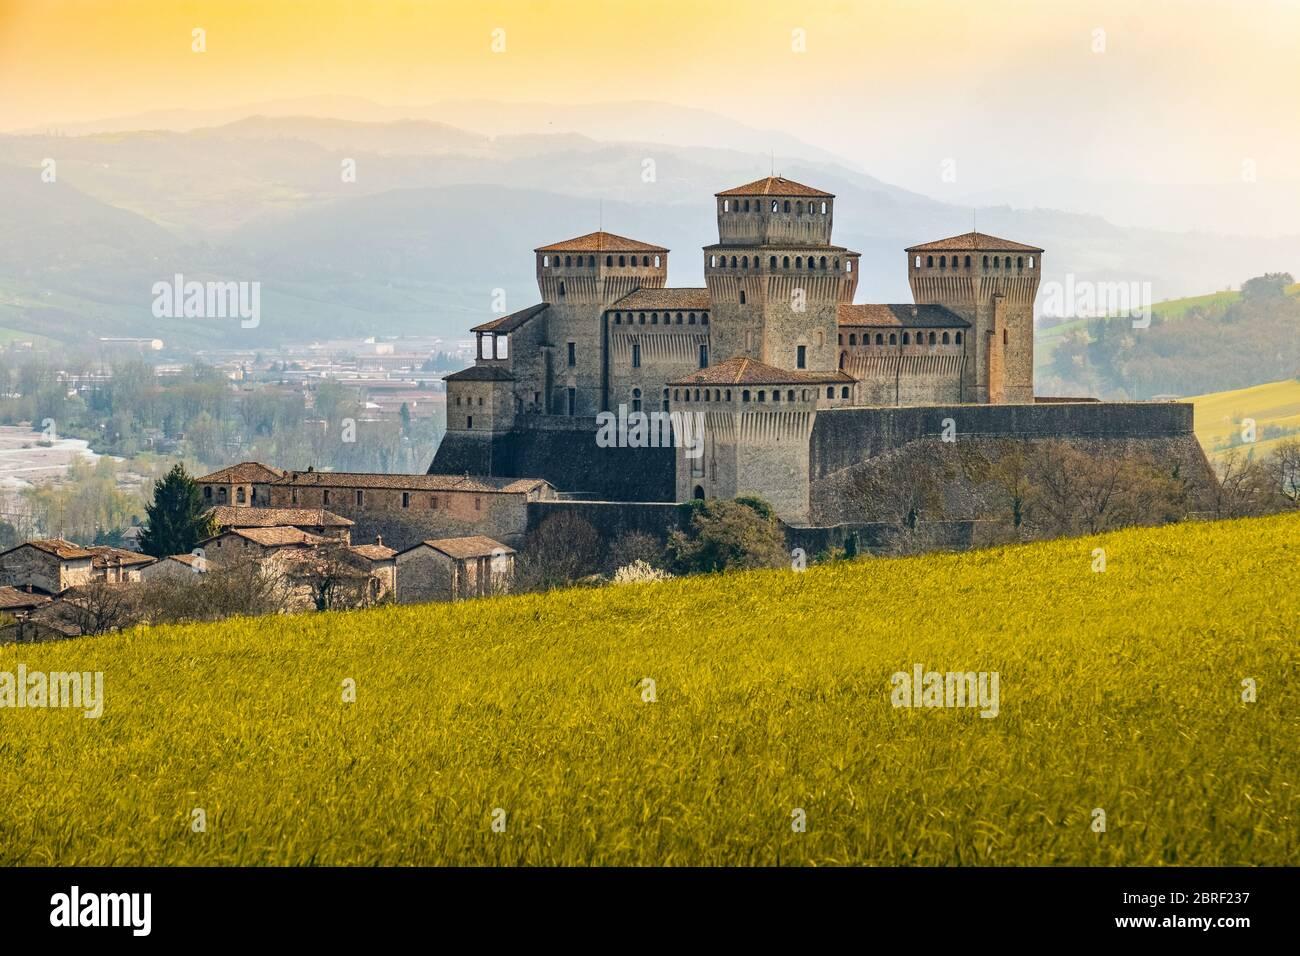 landmarks of italy, the Torrechiara fantasy castle near Parma - Italy with yellow warm toned grass and sky vintage look with copy space Stock Photo